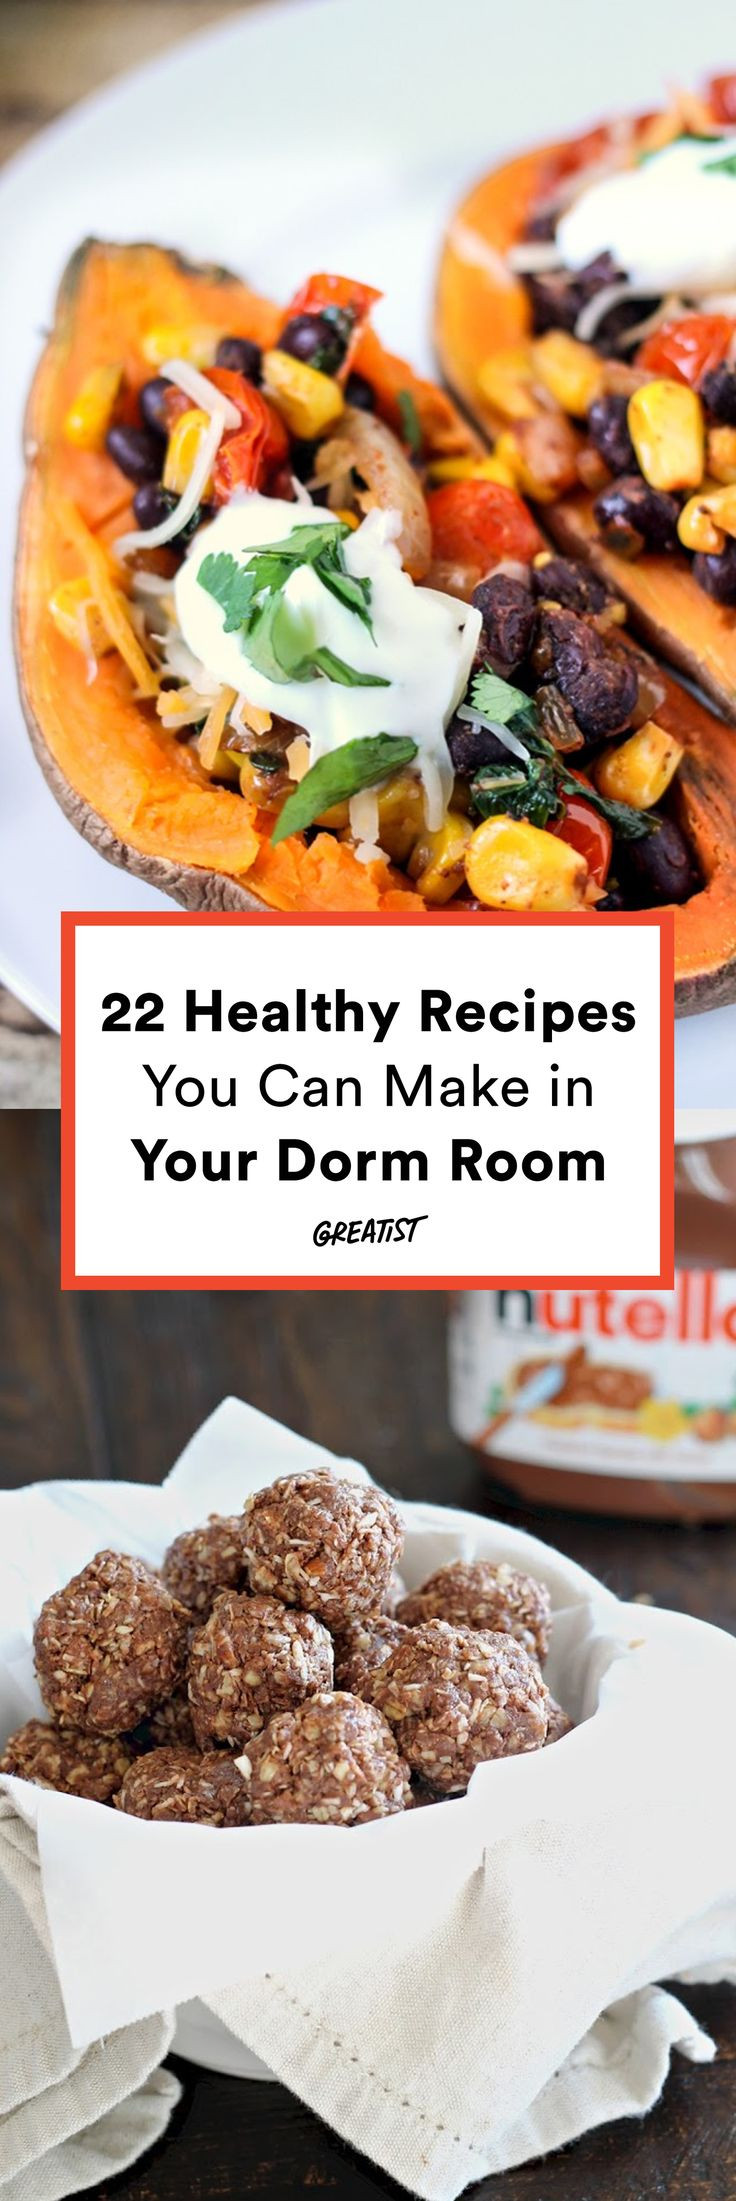 Healthy College Snacks For The Dorm  22 Healthy College Recipes You Can Make in Your Dorm Room